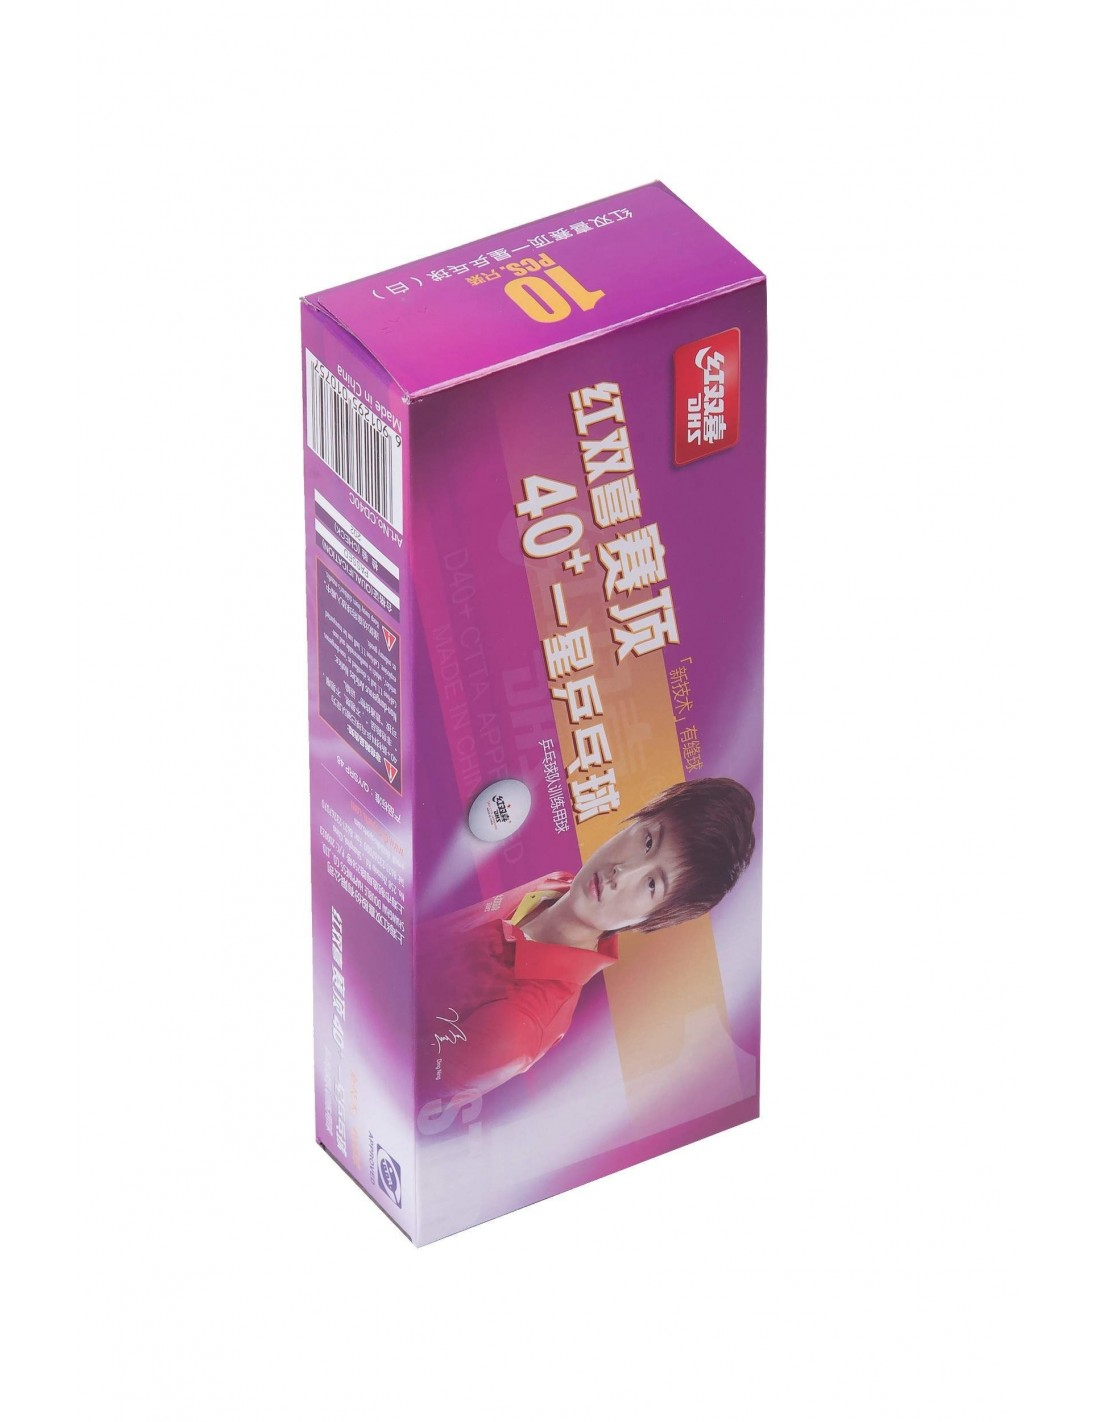 Balle pl stique dhs d40 1 pack 10 seam - Balle plastique tennis de table ...